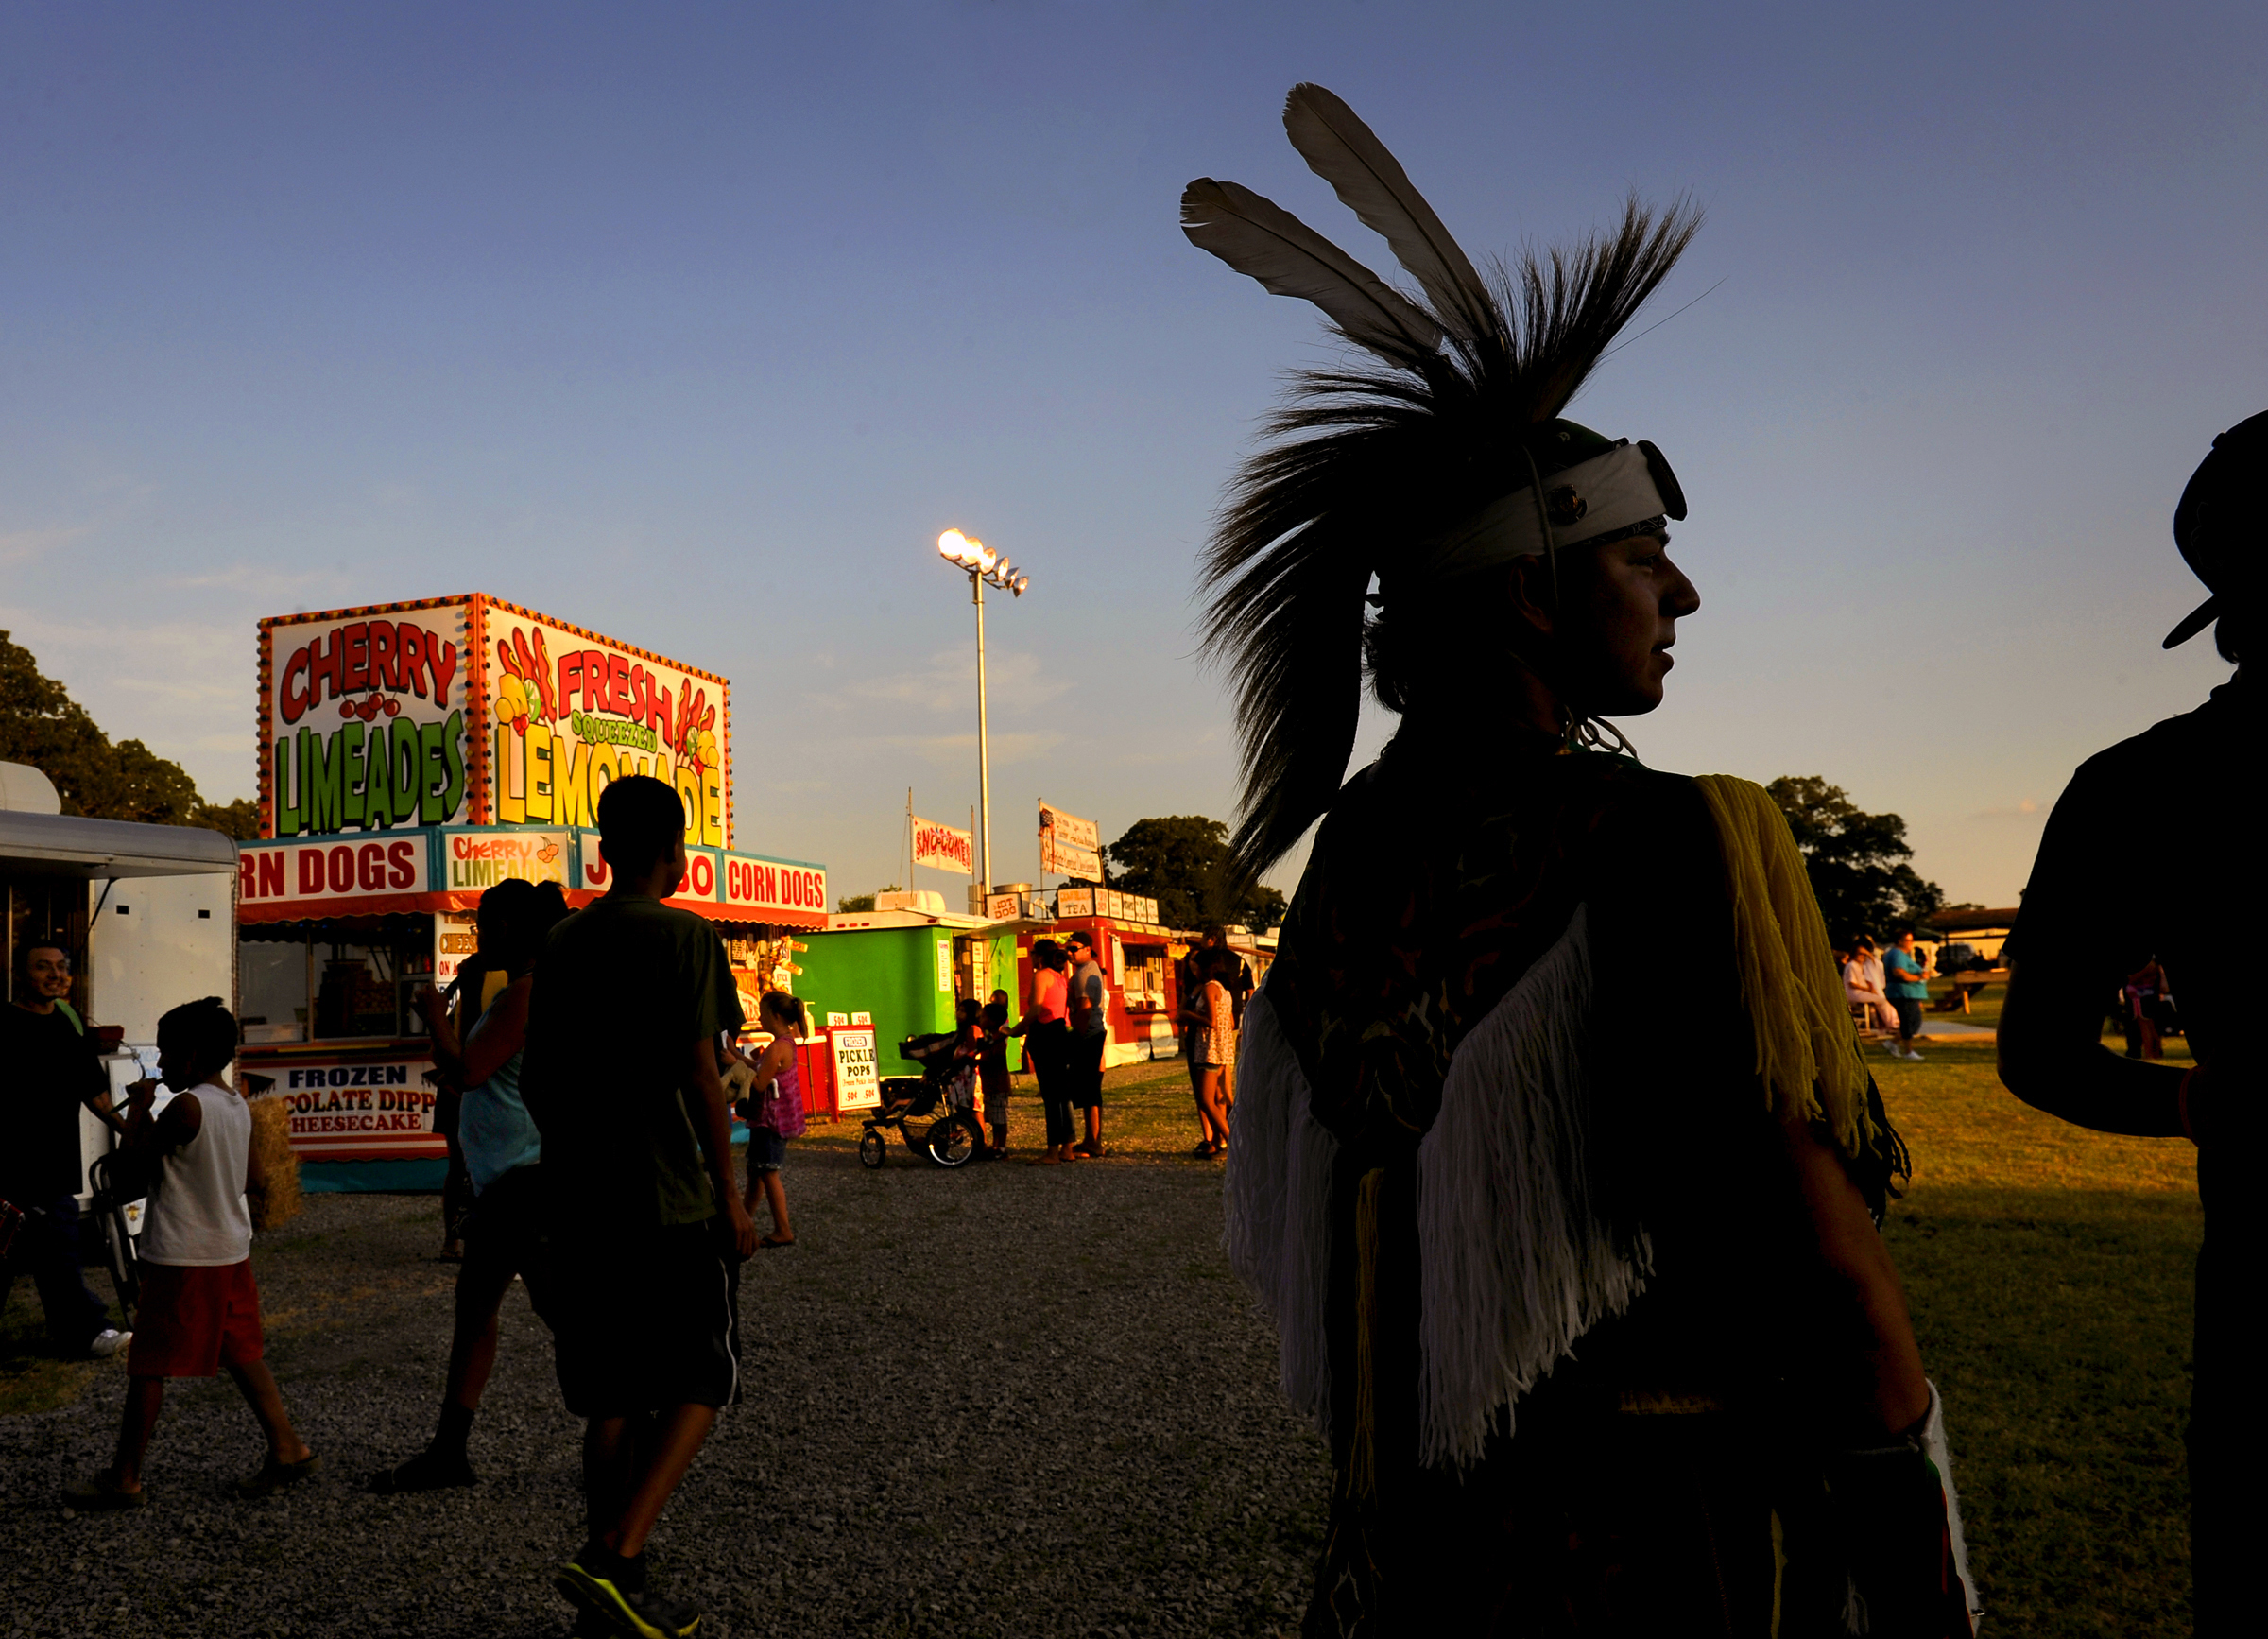 Kaylon Wood, 15, waits for a tribal ceremony to begin as he was taking part in a Pow Wow at the Sac and Fox Nation annual event in Stroud, Okla. on July 30, 2012.